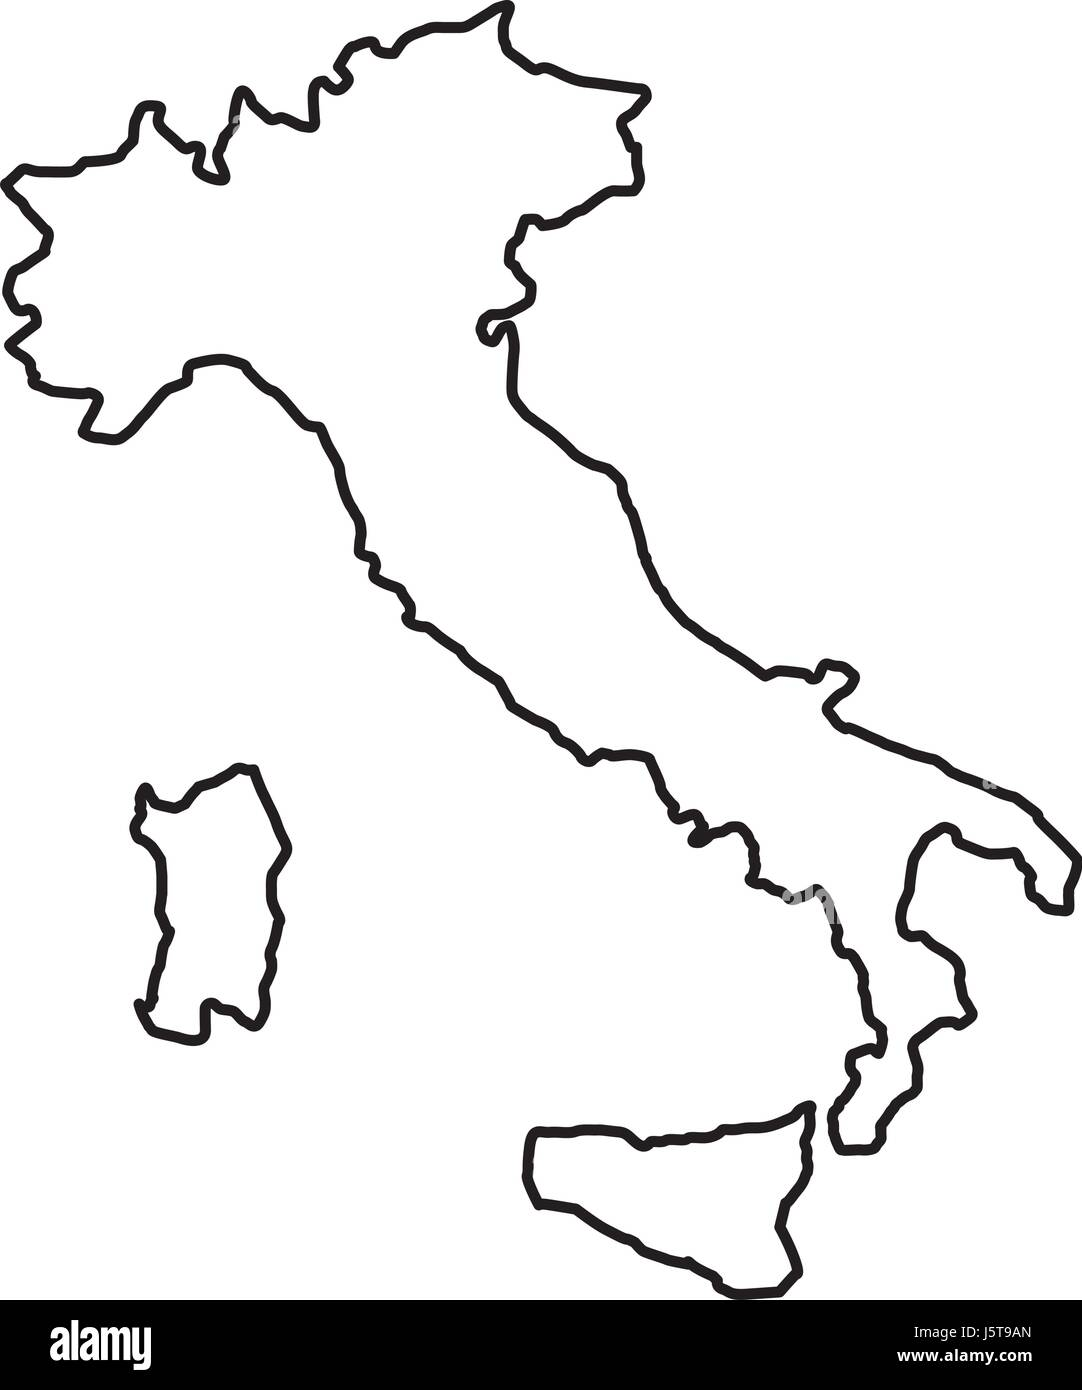 italy map black and white stock photos images alamy Printable Blank Outline Map of Italy italy map icon stock image